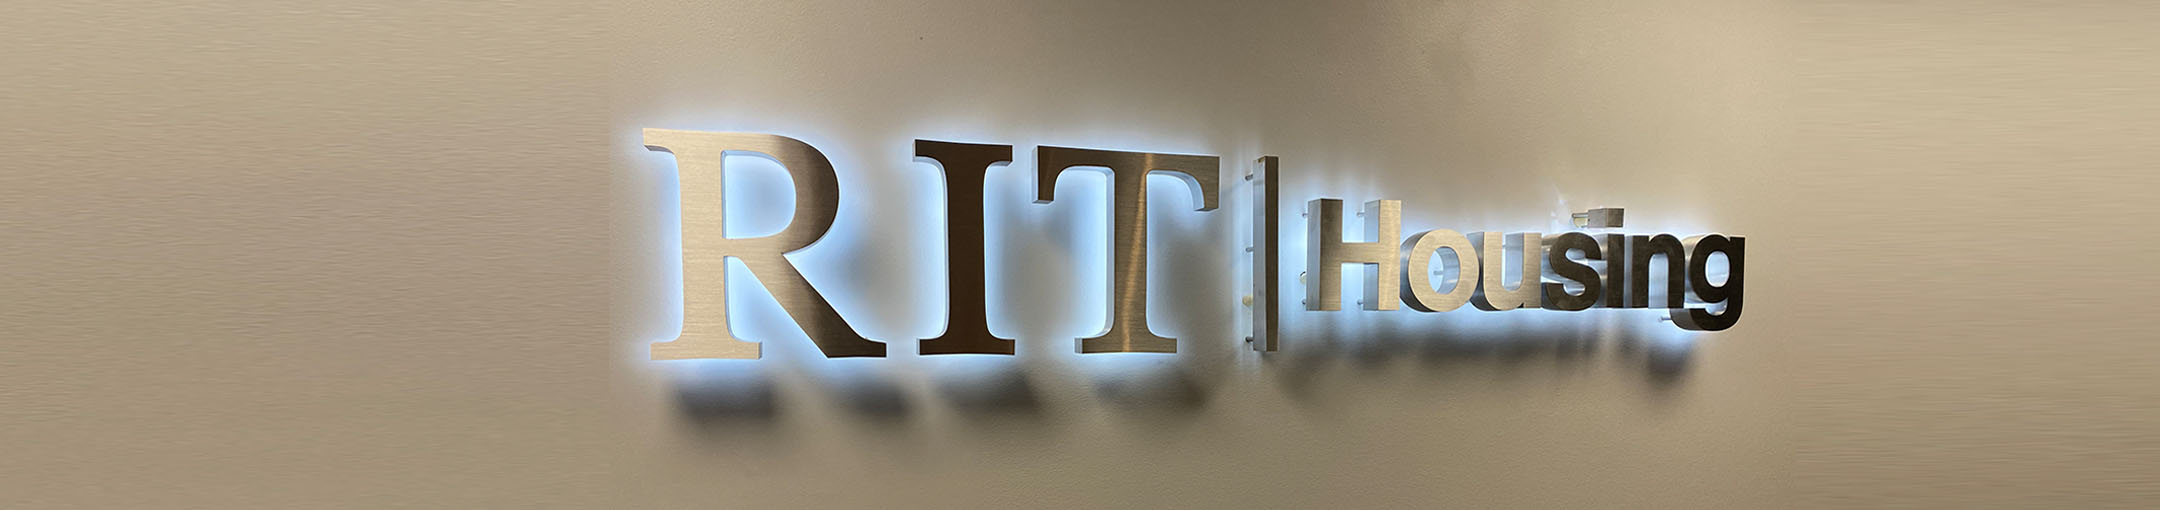 Illuminated RIT Housing Logo on a wall